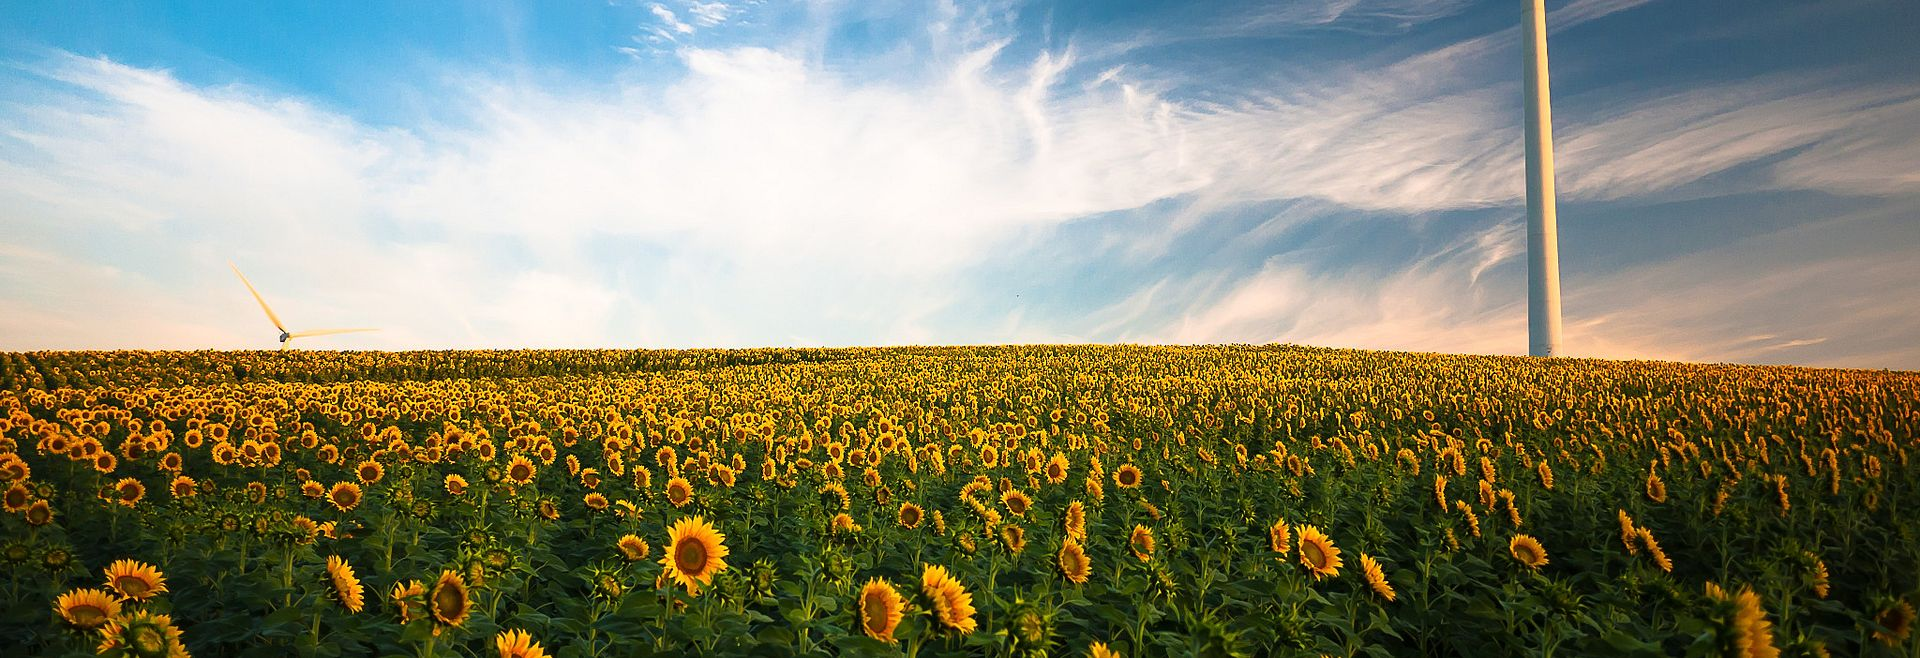 Sunflower field with wind mill